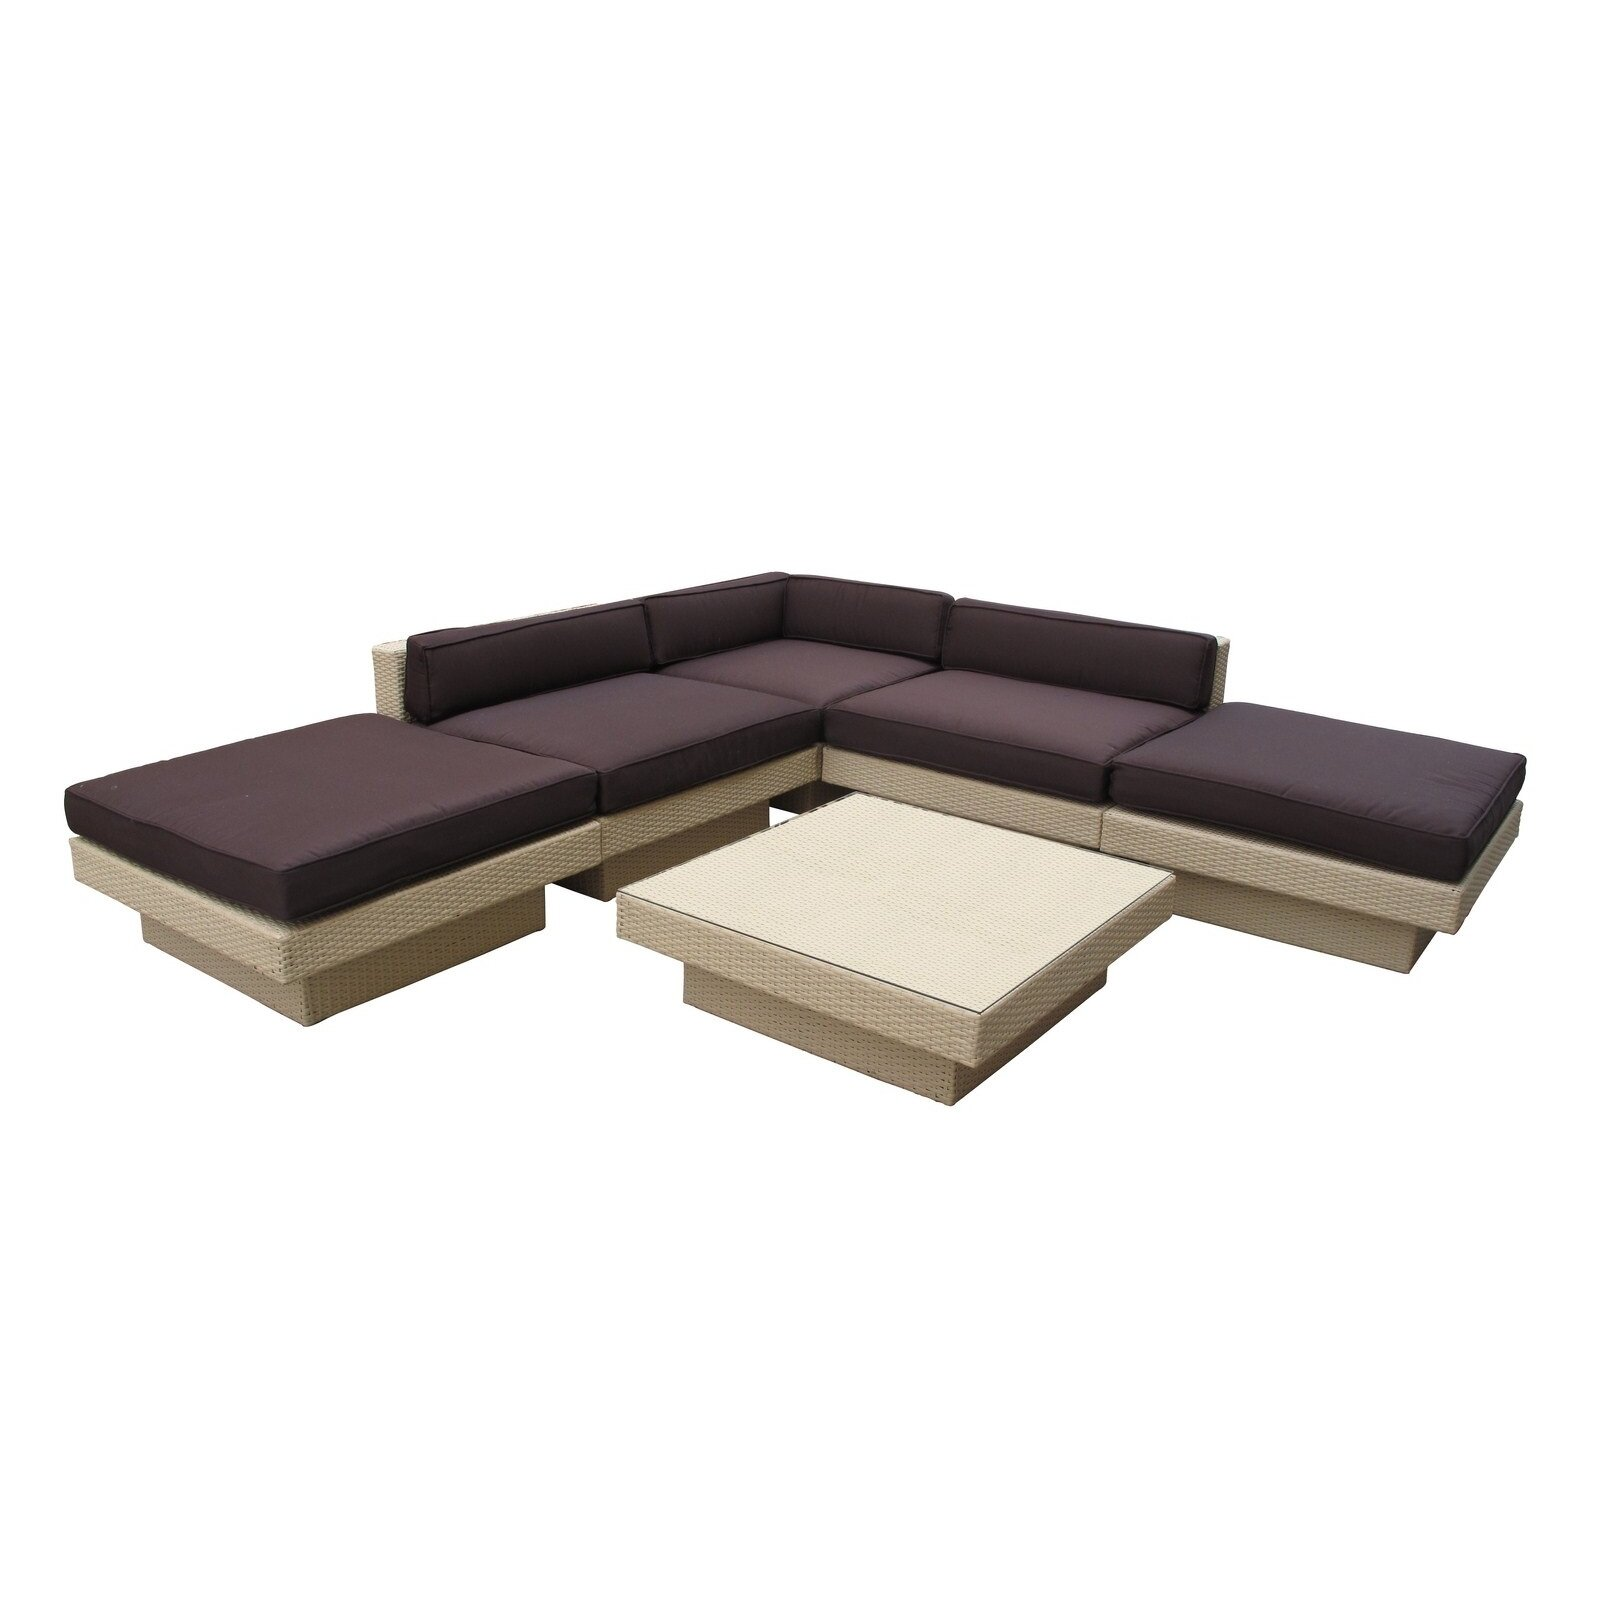 Modway Luxury 6 Piece Rattan Sectional Set with Cushions & Reviews